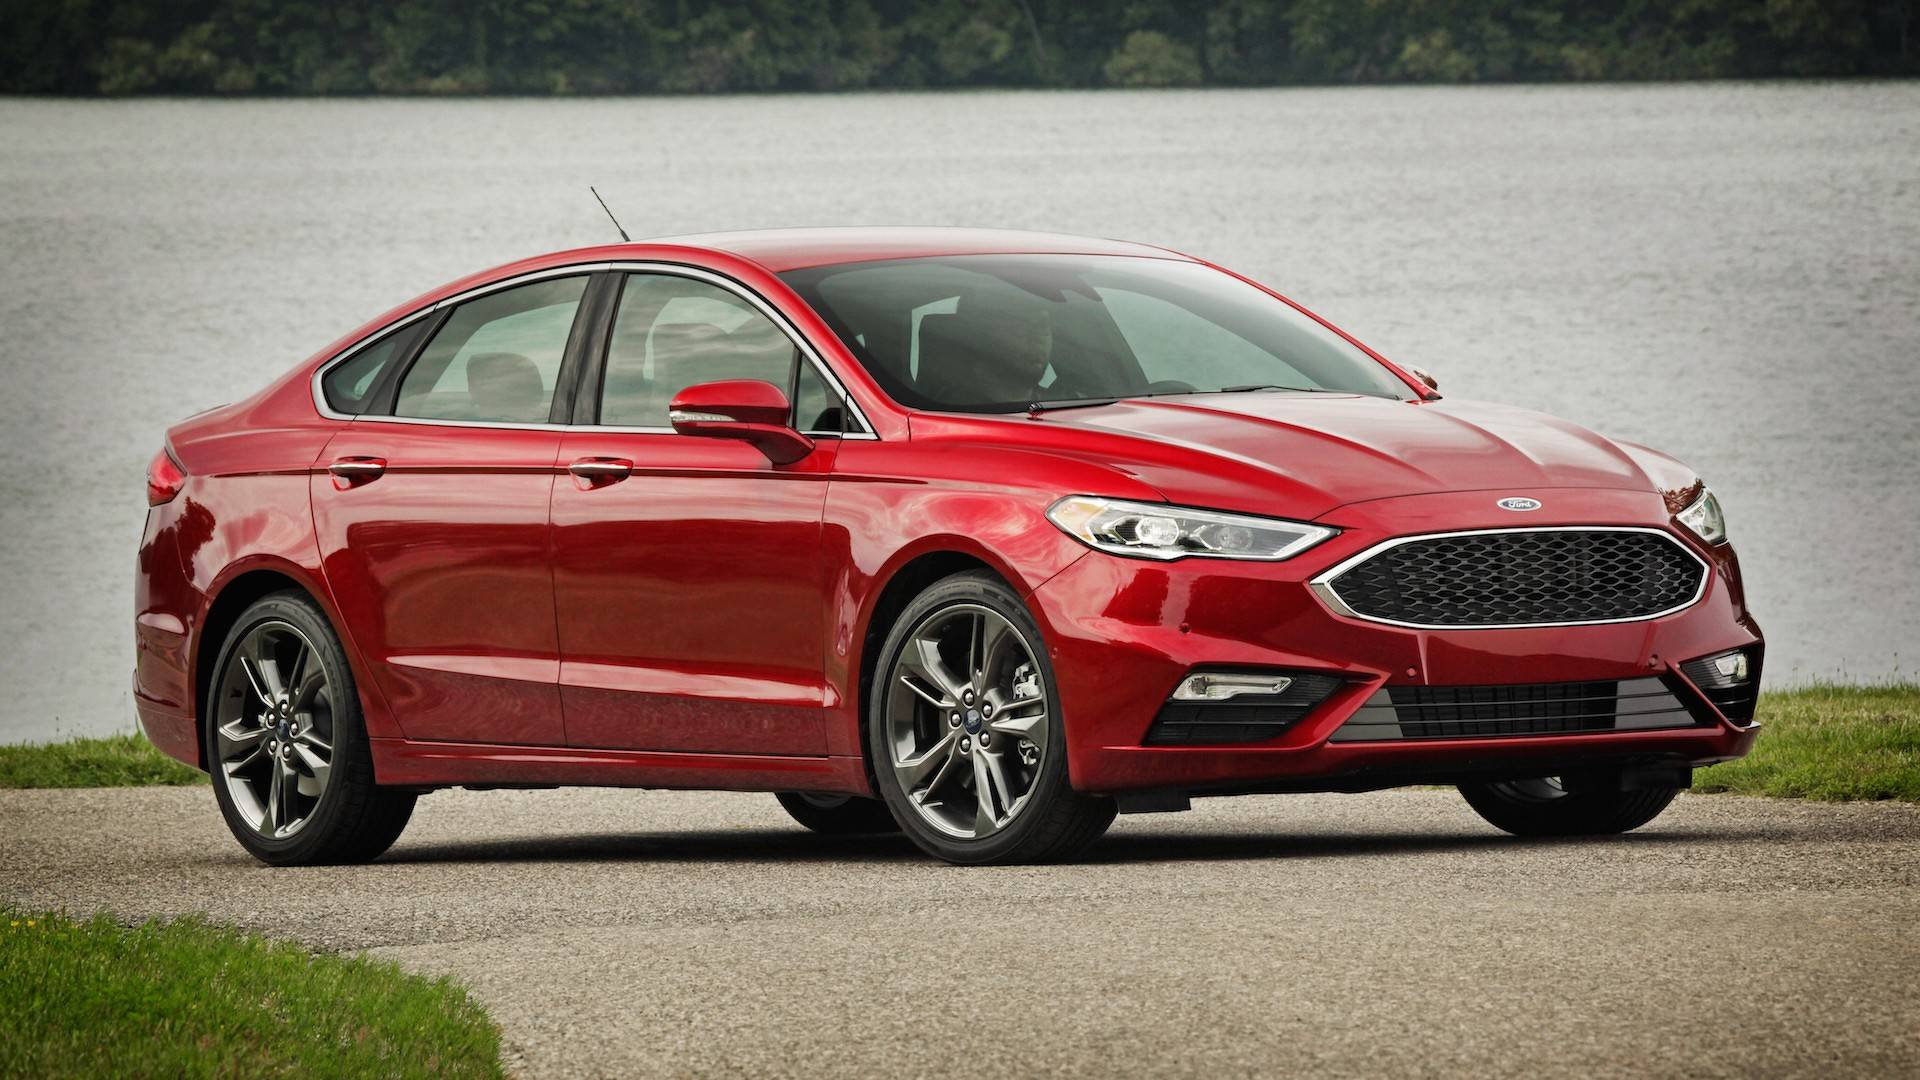 84 Best 2020 The Spy Shots Ford Fusion Redesign and Concept